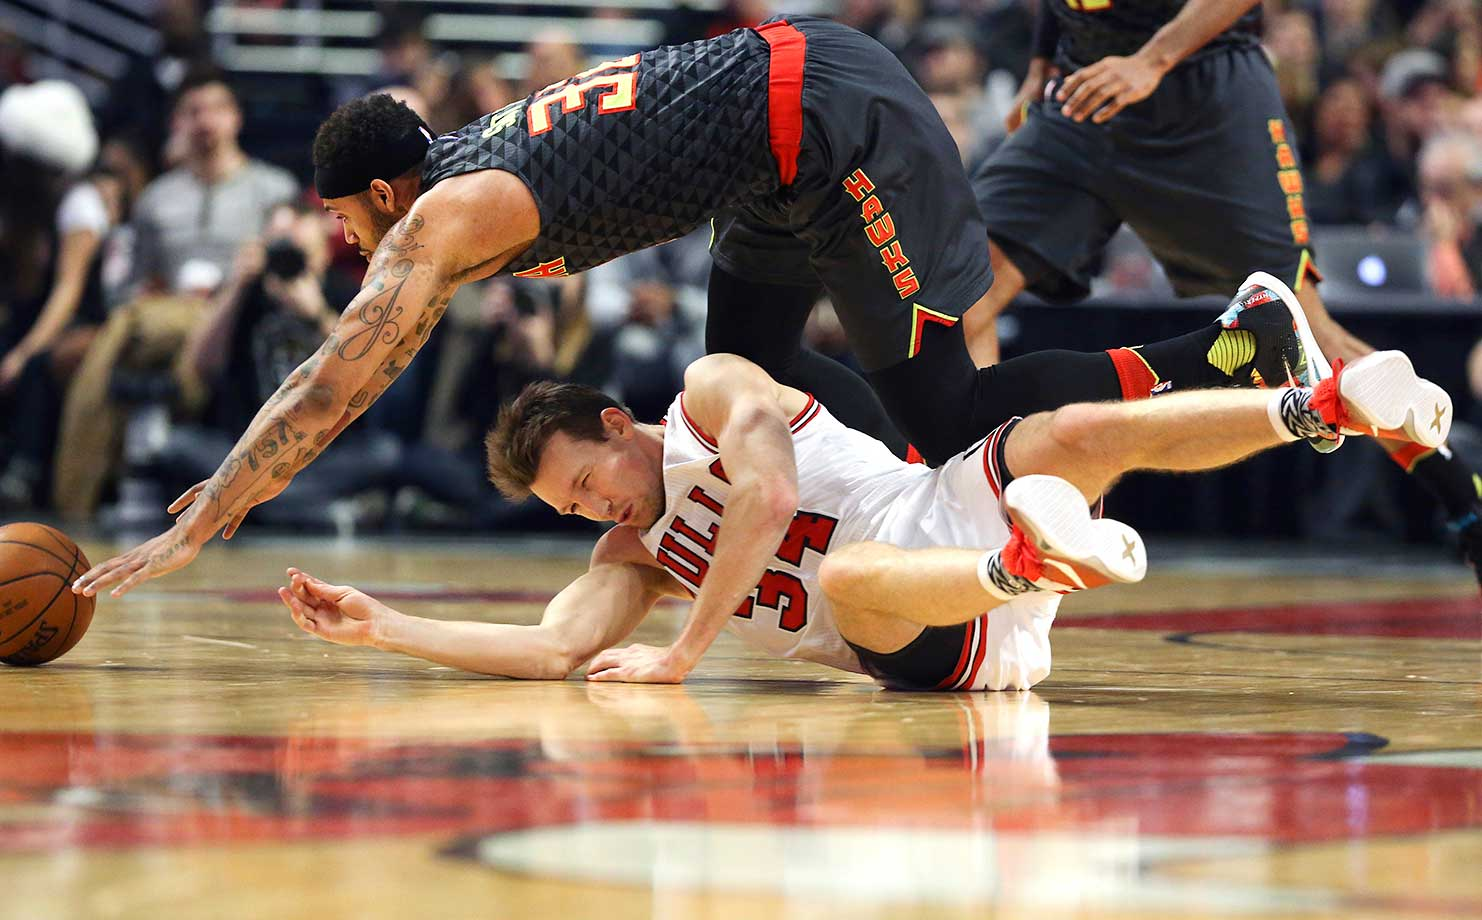 The Atlanta Hawks' Mike Scott climbs over the Chicago Bulls' Mike Dunleavy (34) to go after a ball.